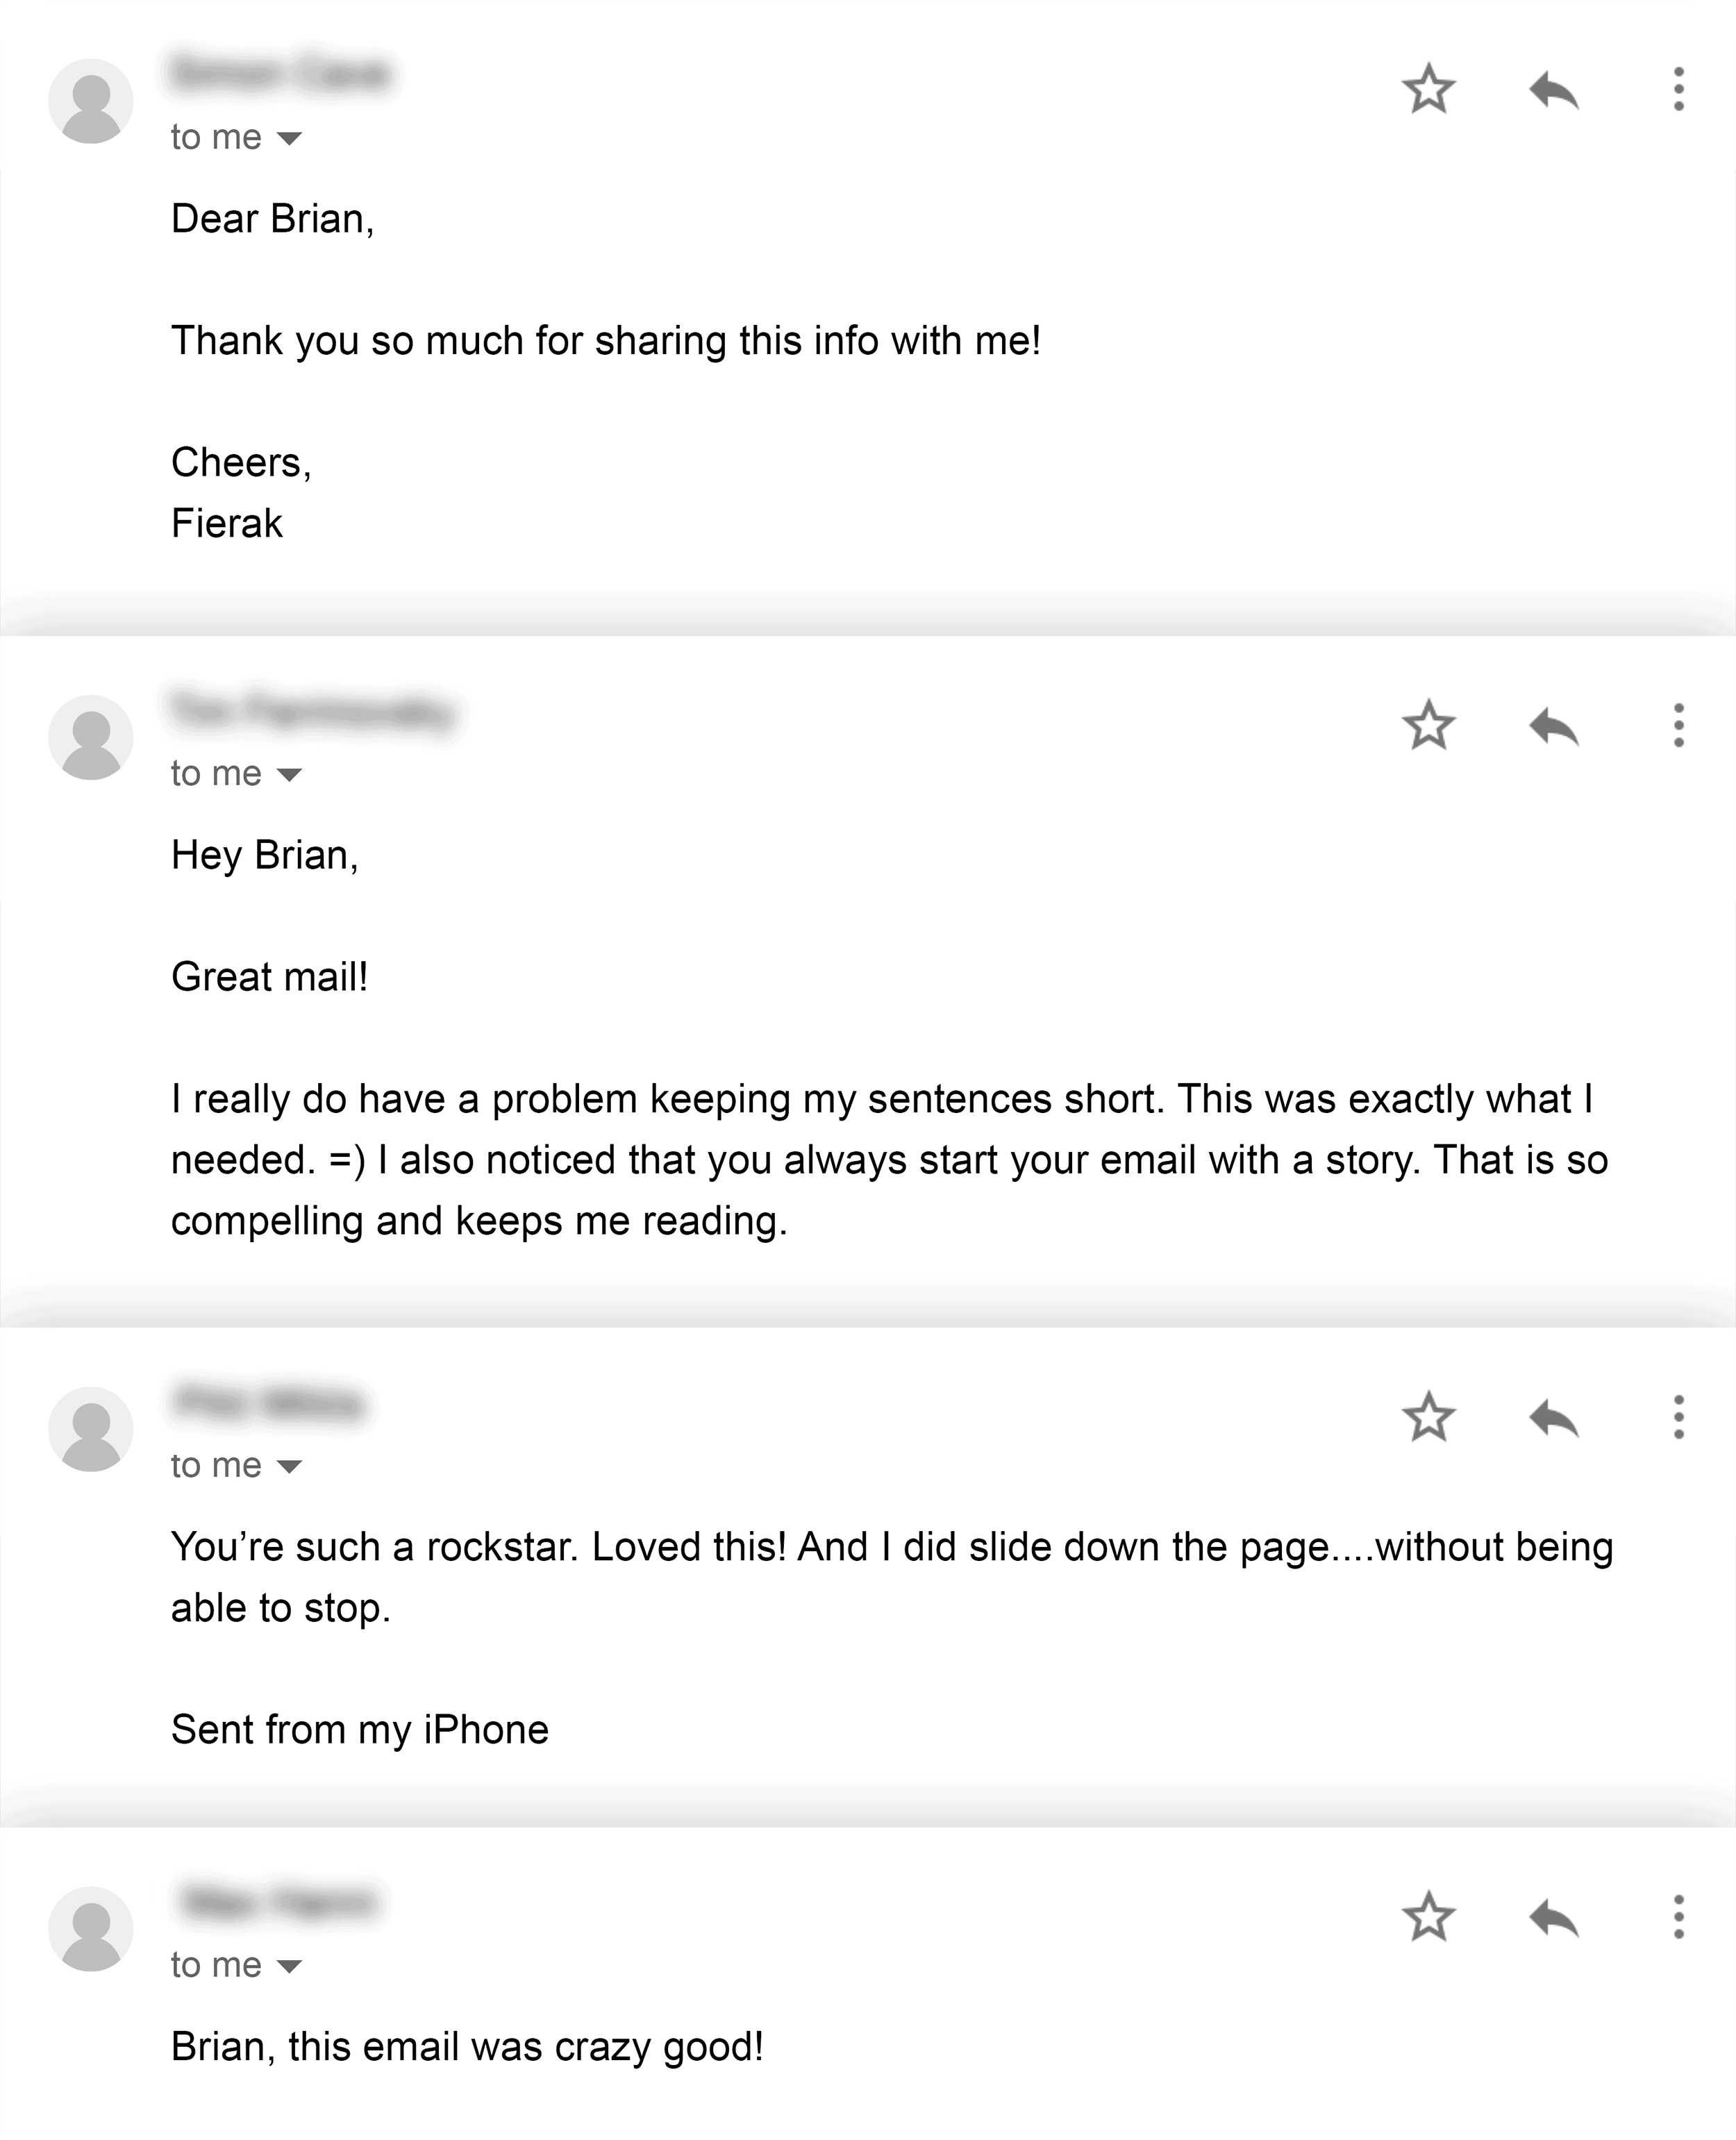 Newsletter email replies